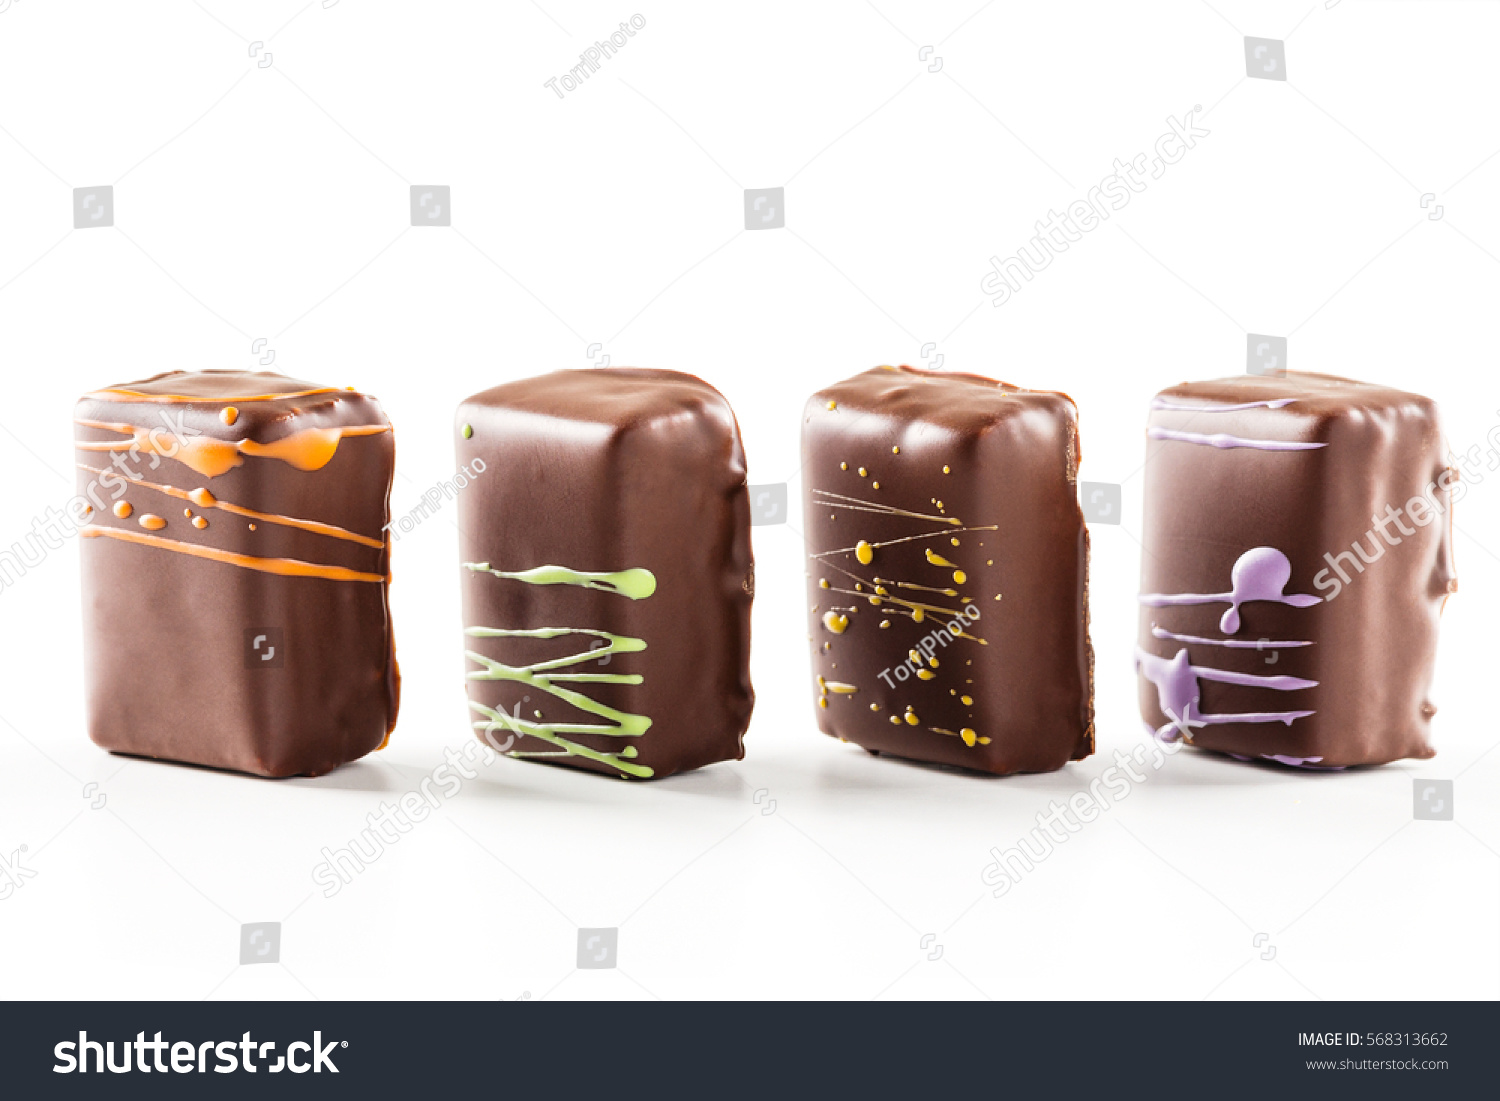 https://www.shutterstock.com/image-photo/fine-chocolate-candies-bars-isolated-on-568313662